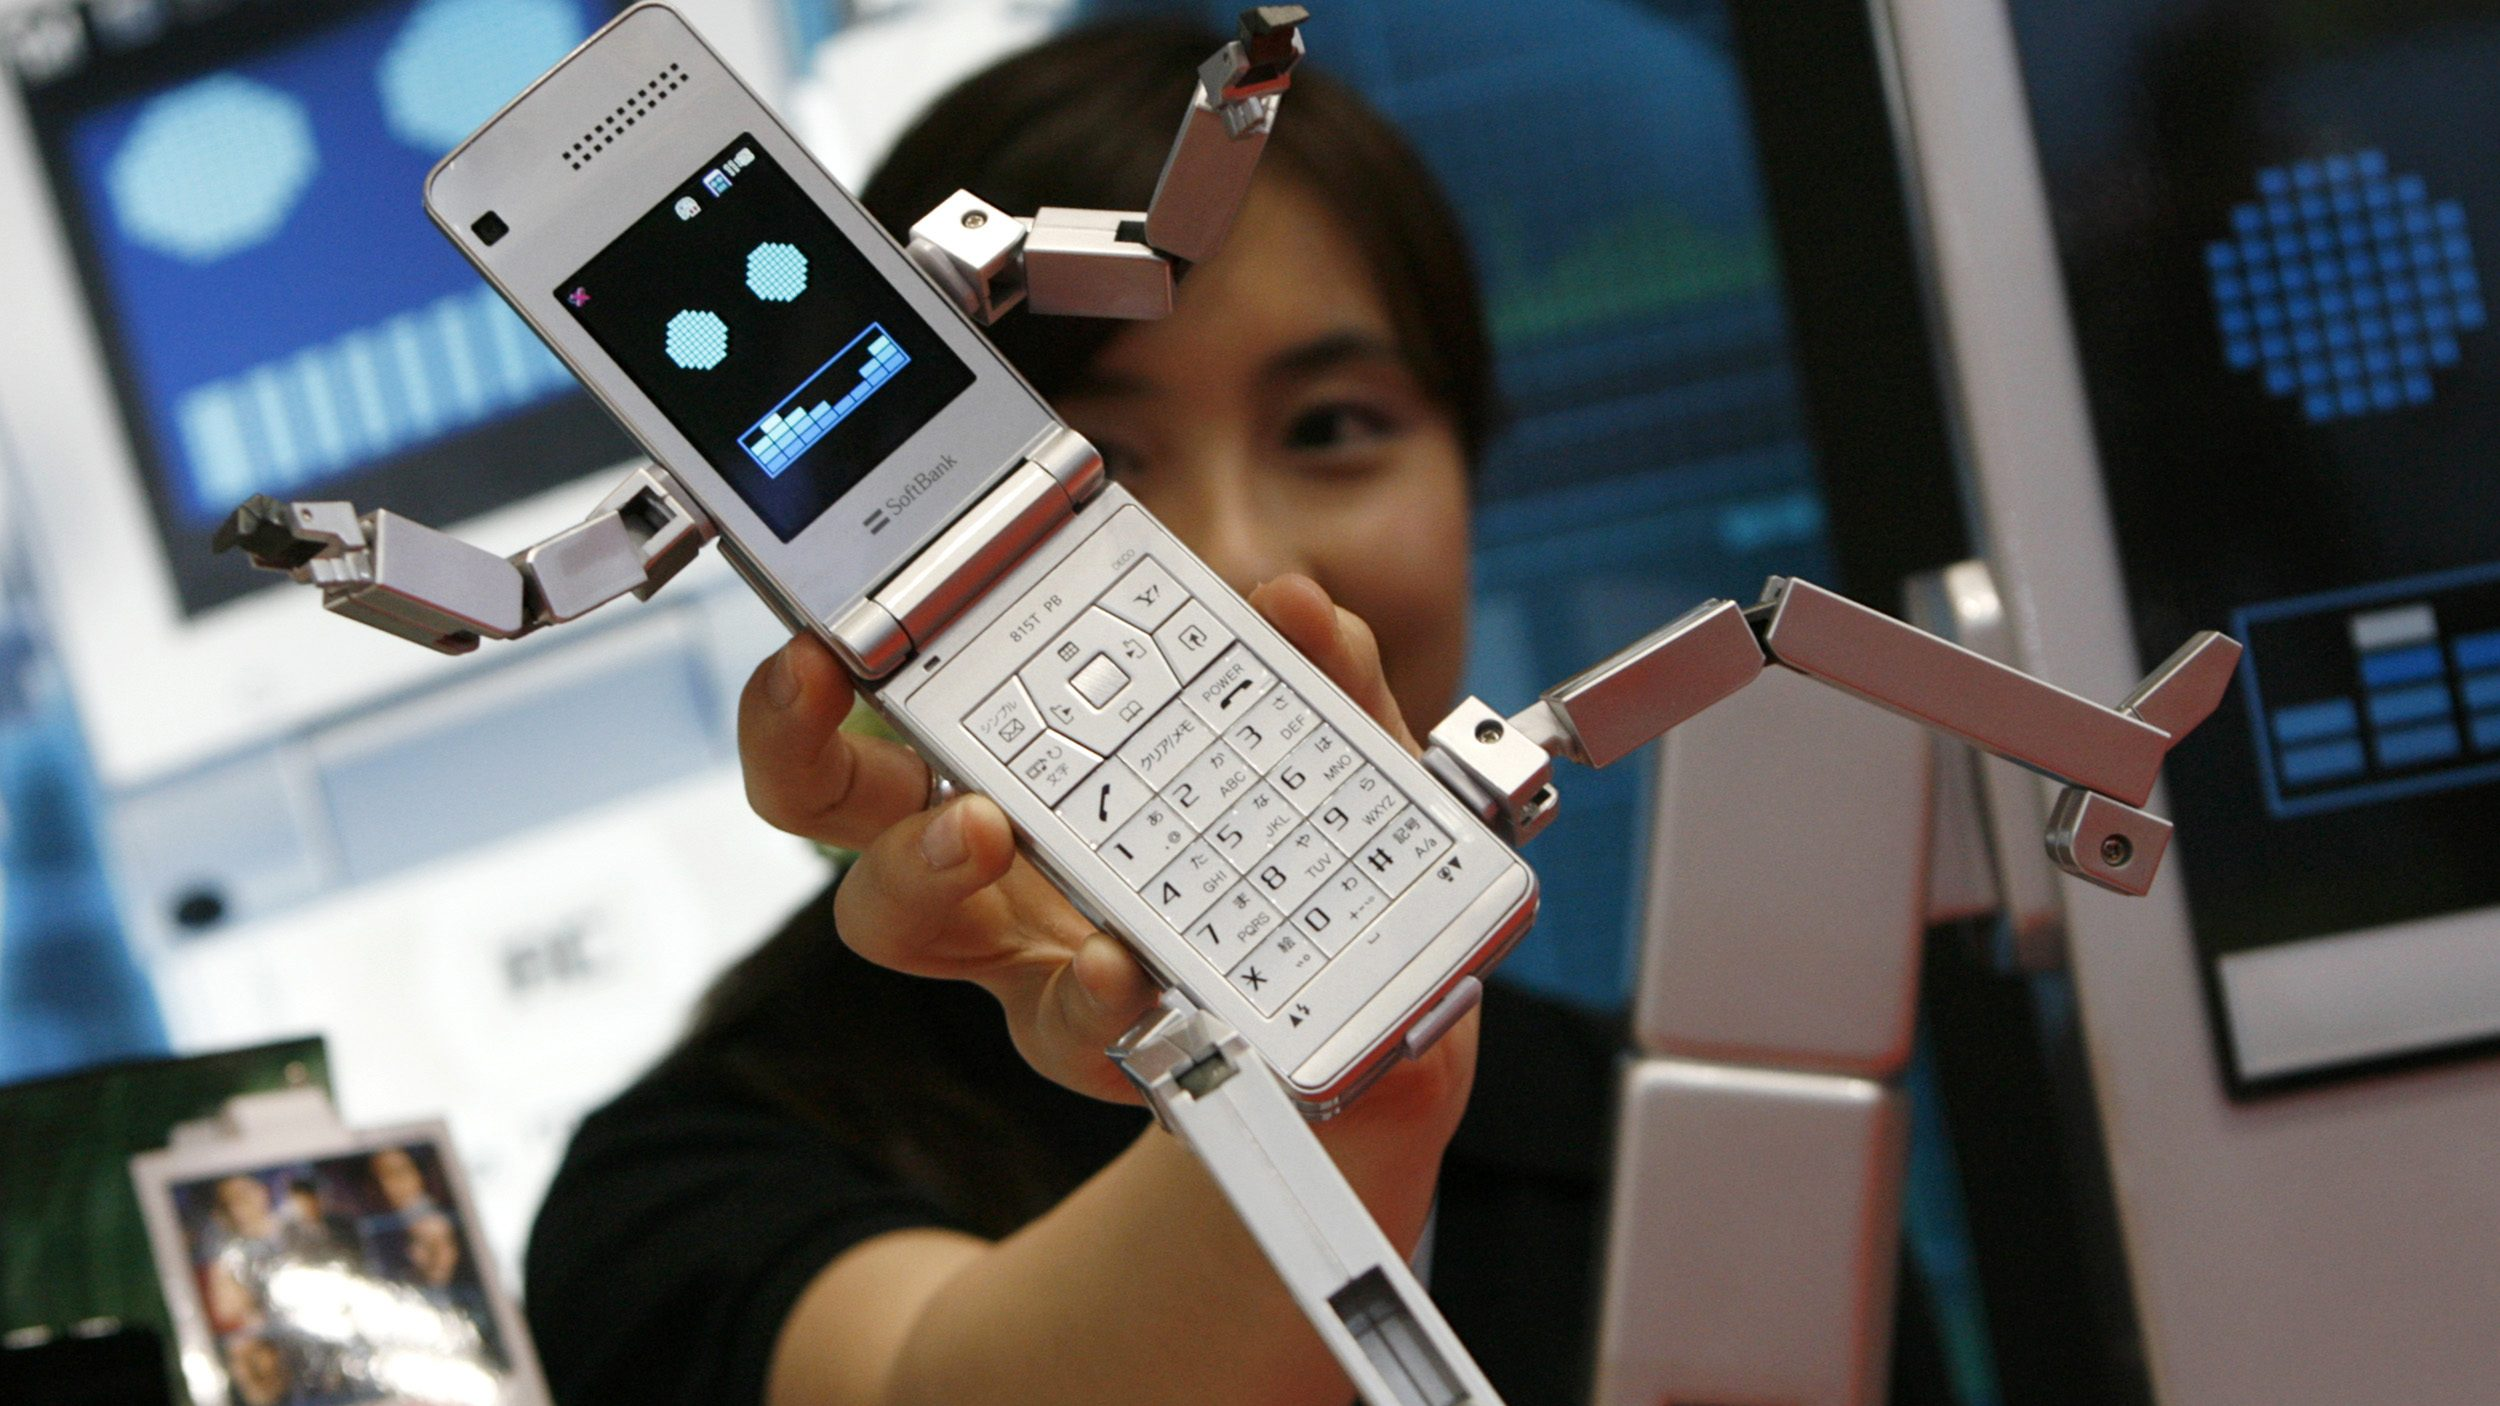 """A woman poses with the SoftBank Mobile Corp's robot-shaped mobile phone """"Phone Braver 815T PB"""" at the International Tokyo Toy Show in Tokyo June 19, 2008."""